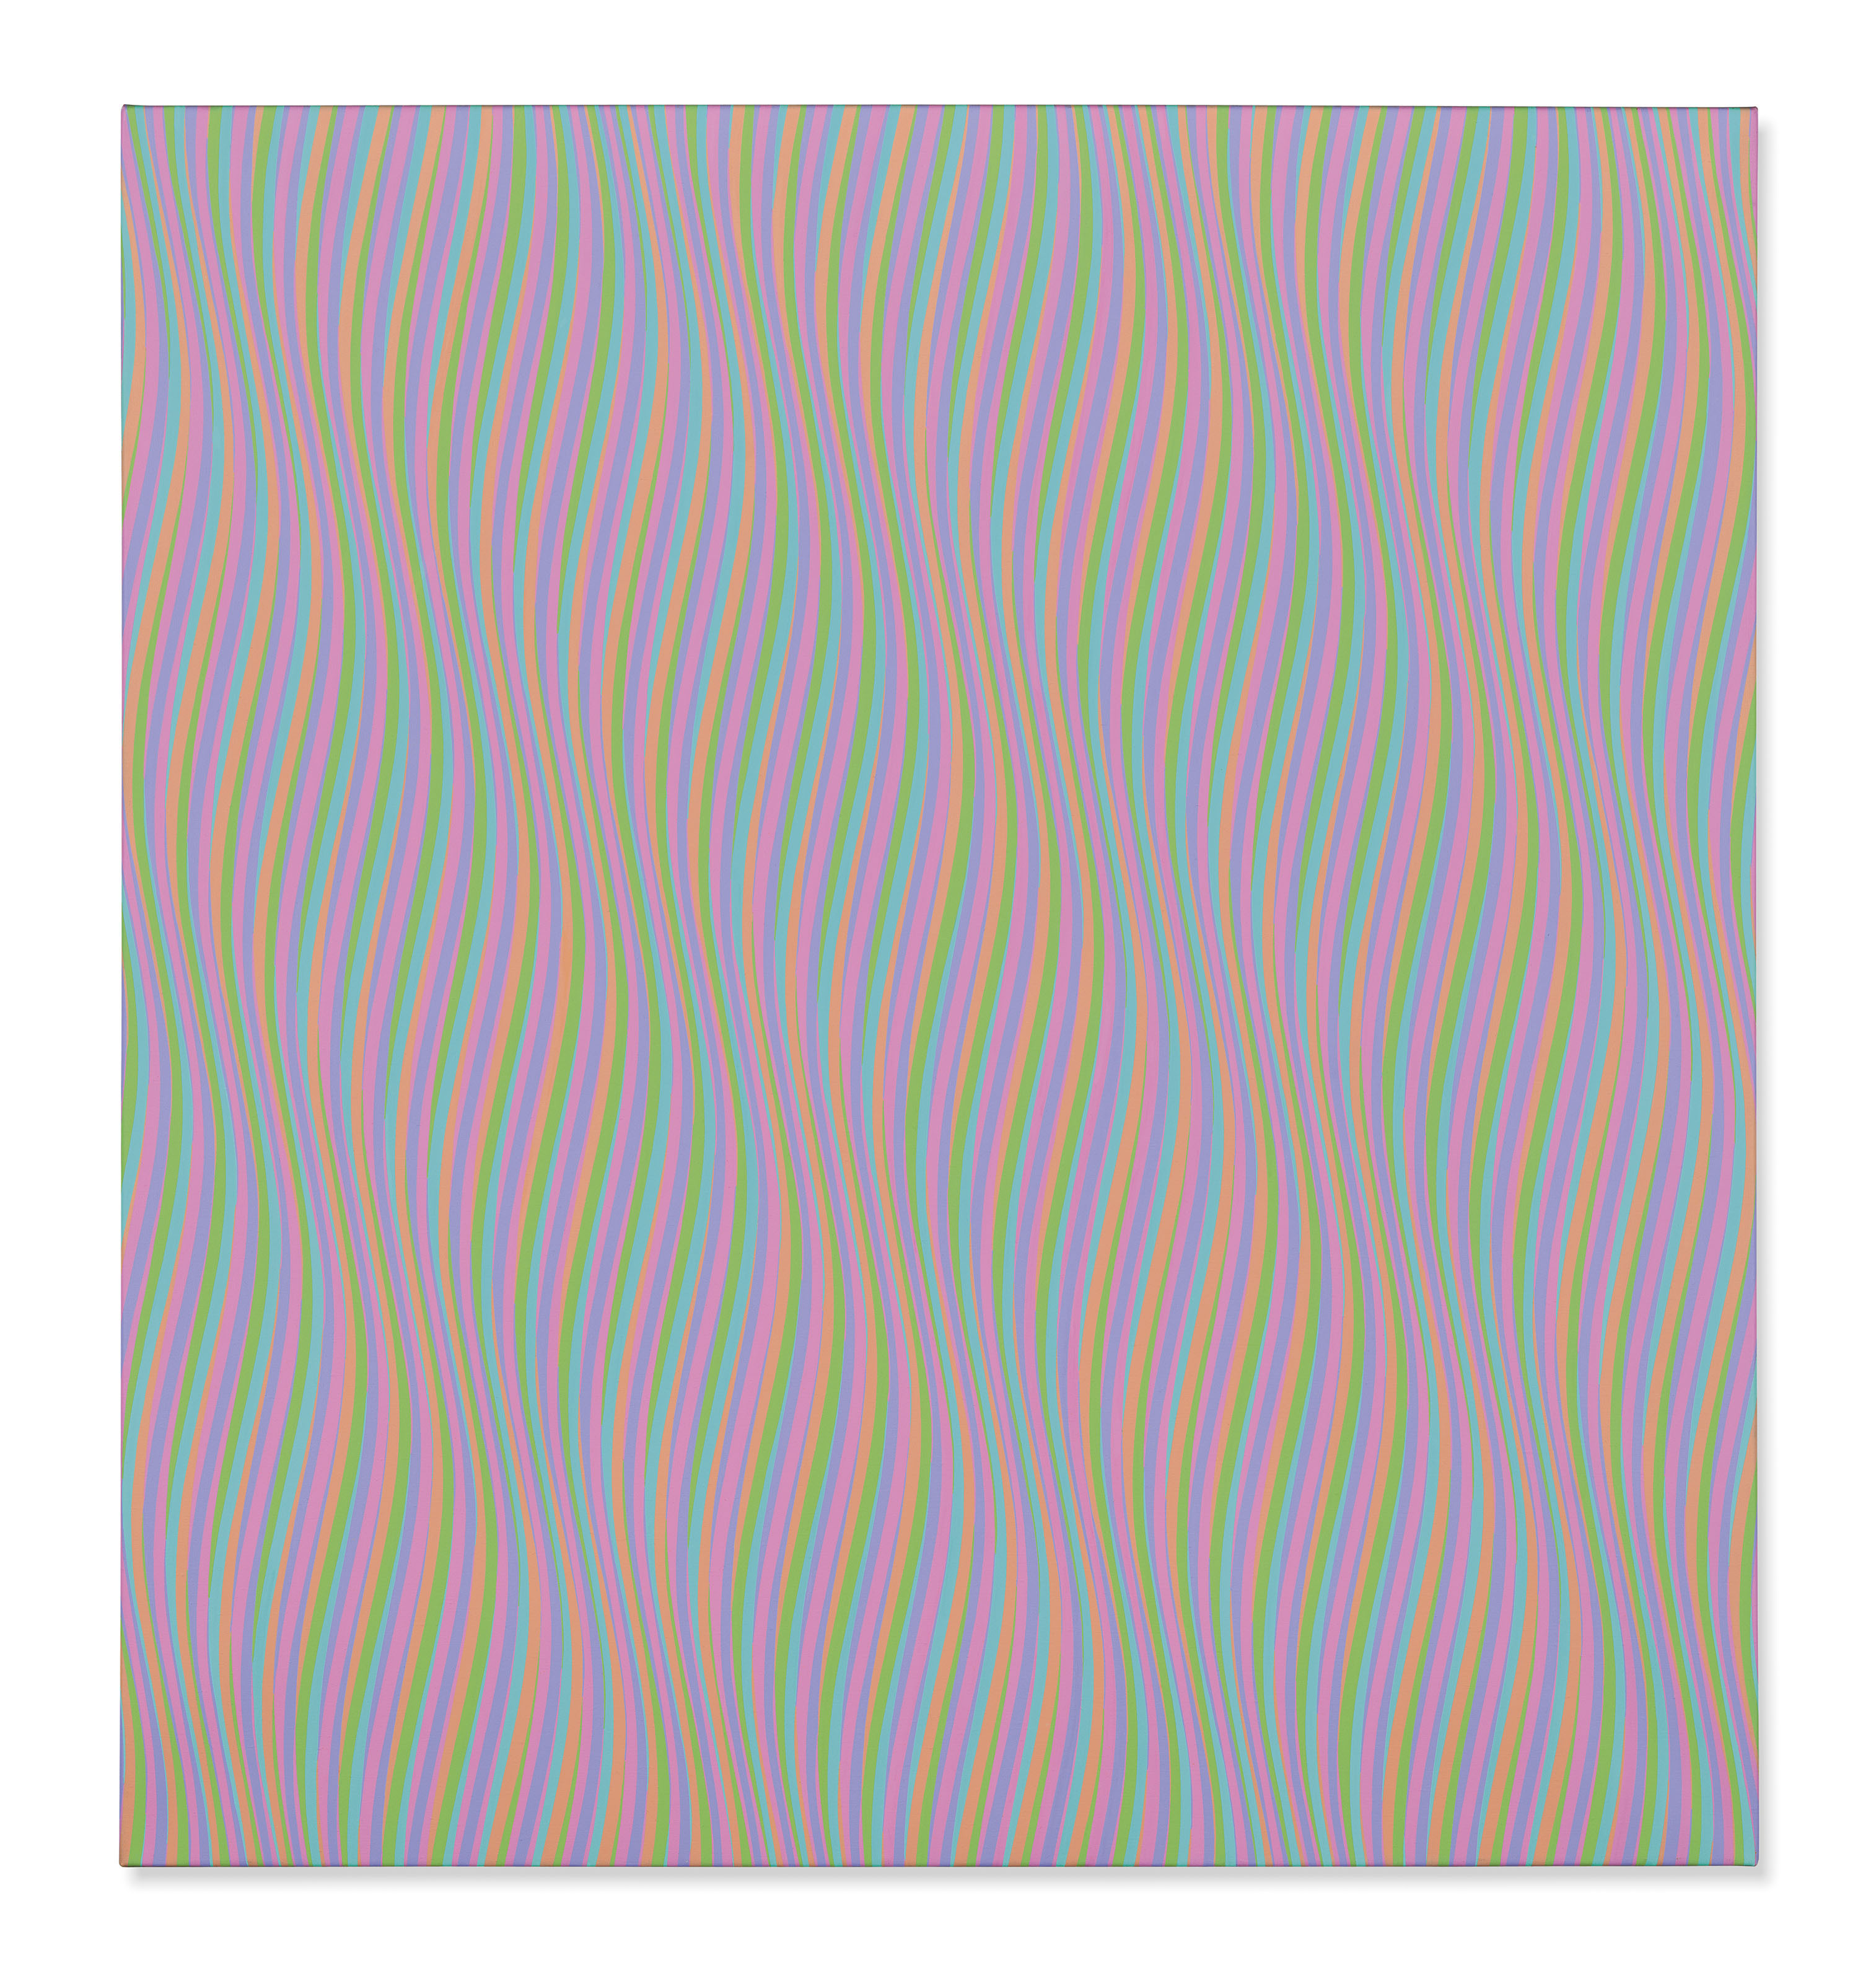 Bridget Riley, Orphean Elegy 7, 1979. Estimate: £1,500,000-2,000,000. Offered in The Jeremy Lancaster Collection on 1 October at Christie's London